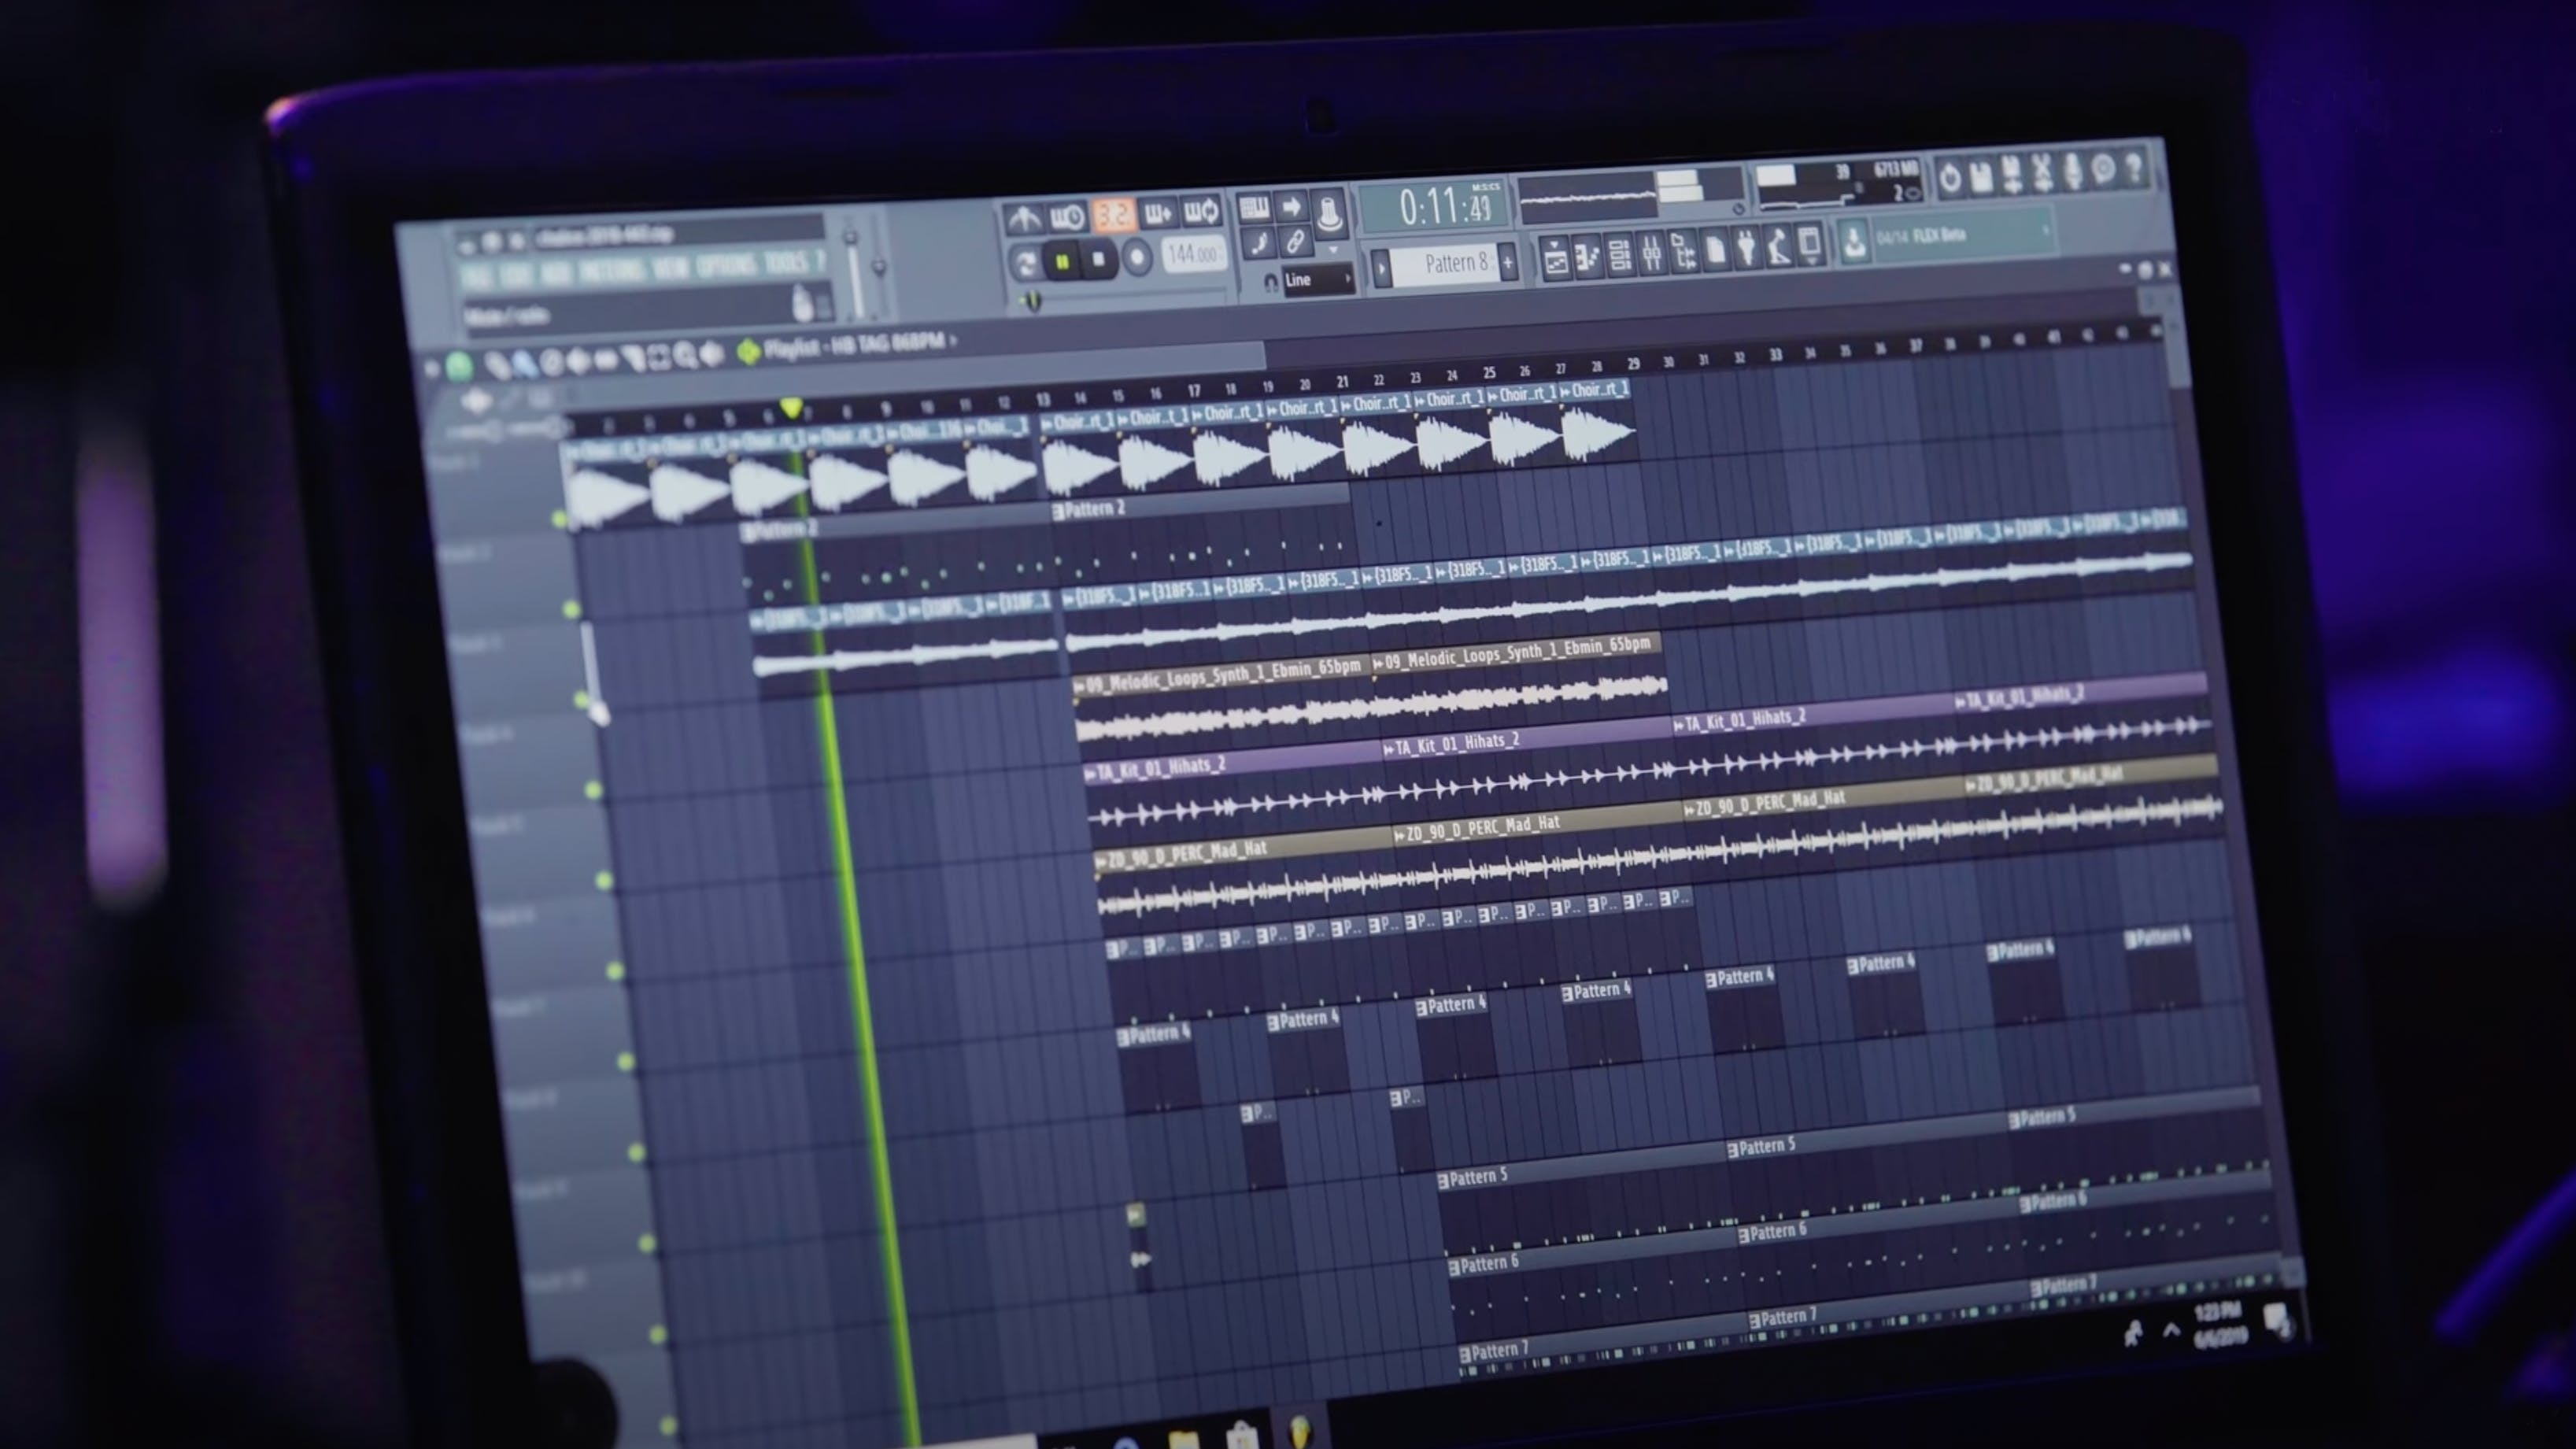 !llmind, a Grammy-winning hip-hop producer, shows his computer screen while working on a song